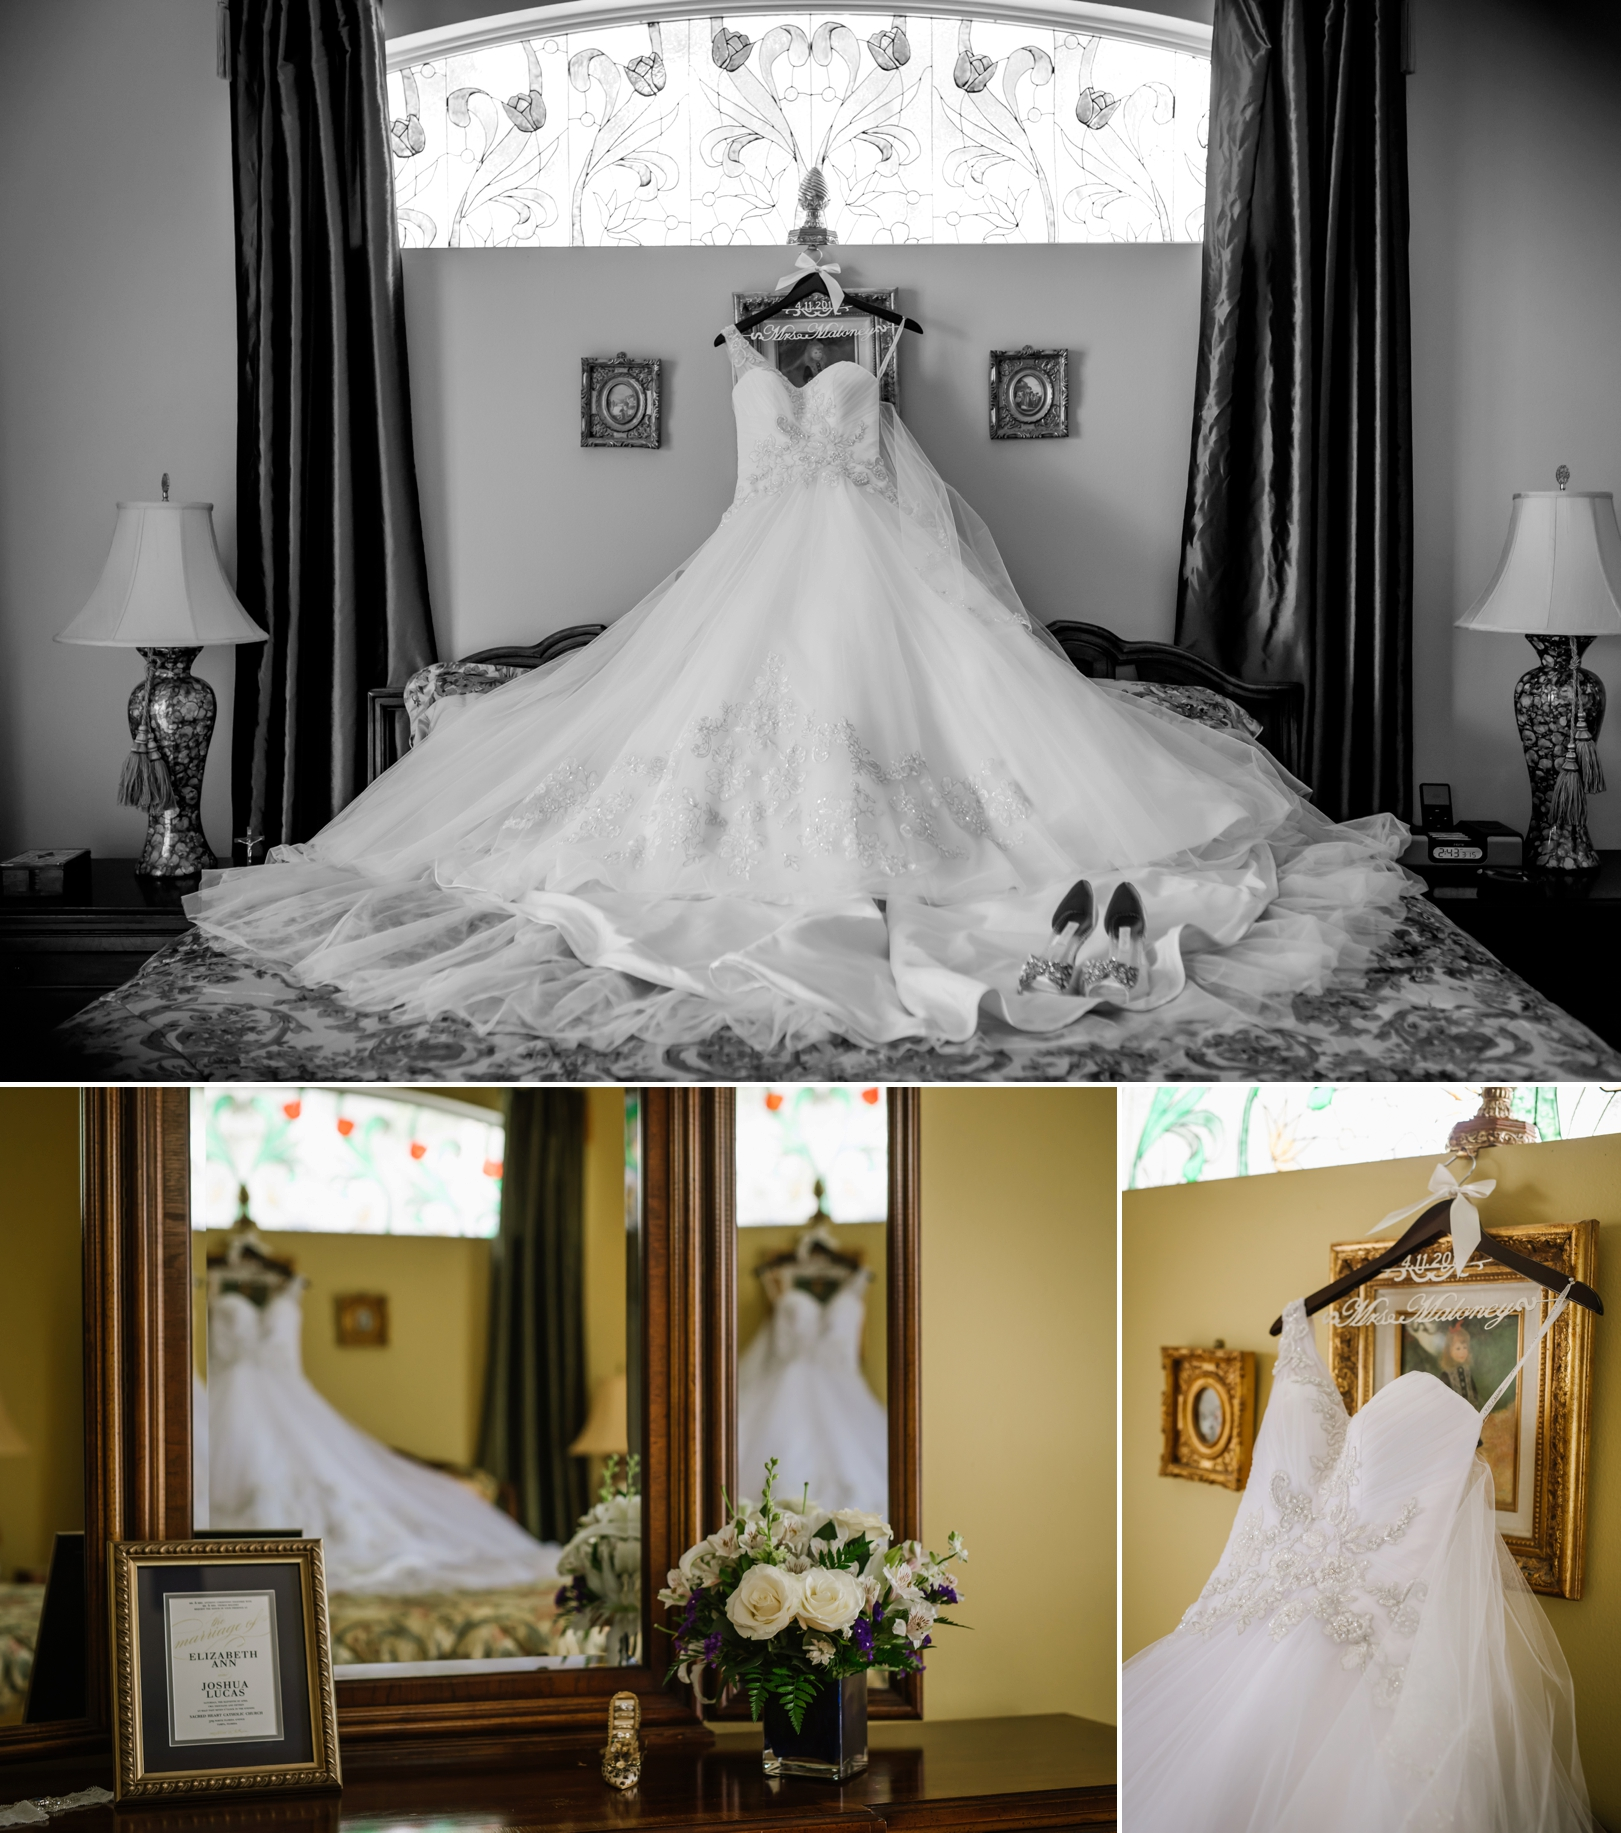 tampa-wedding-photography-traditional-cathedral-wedding_0000.jpg